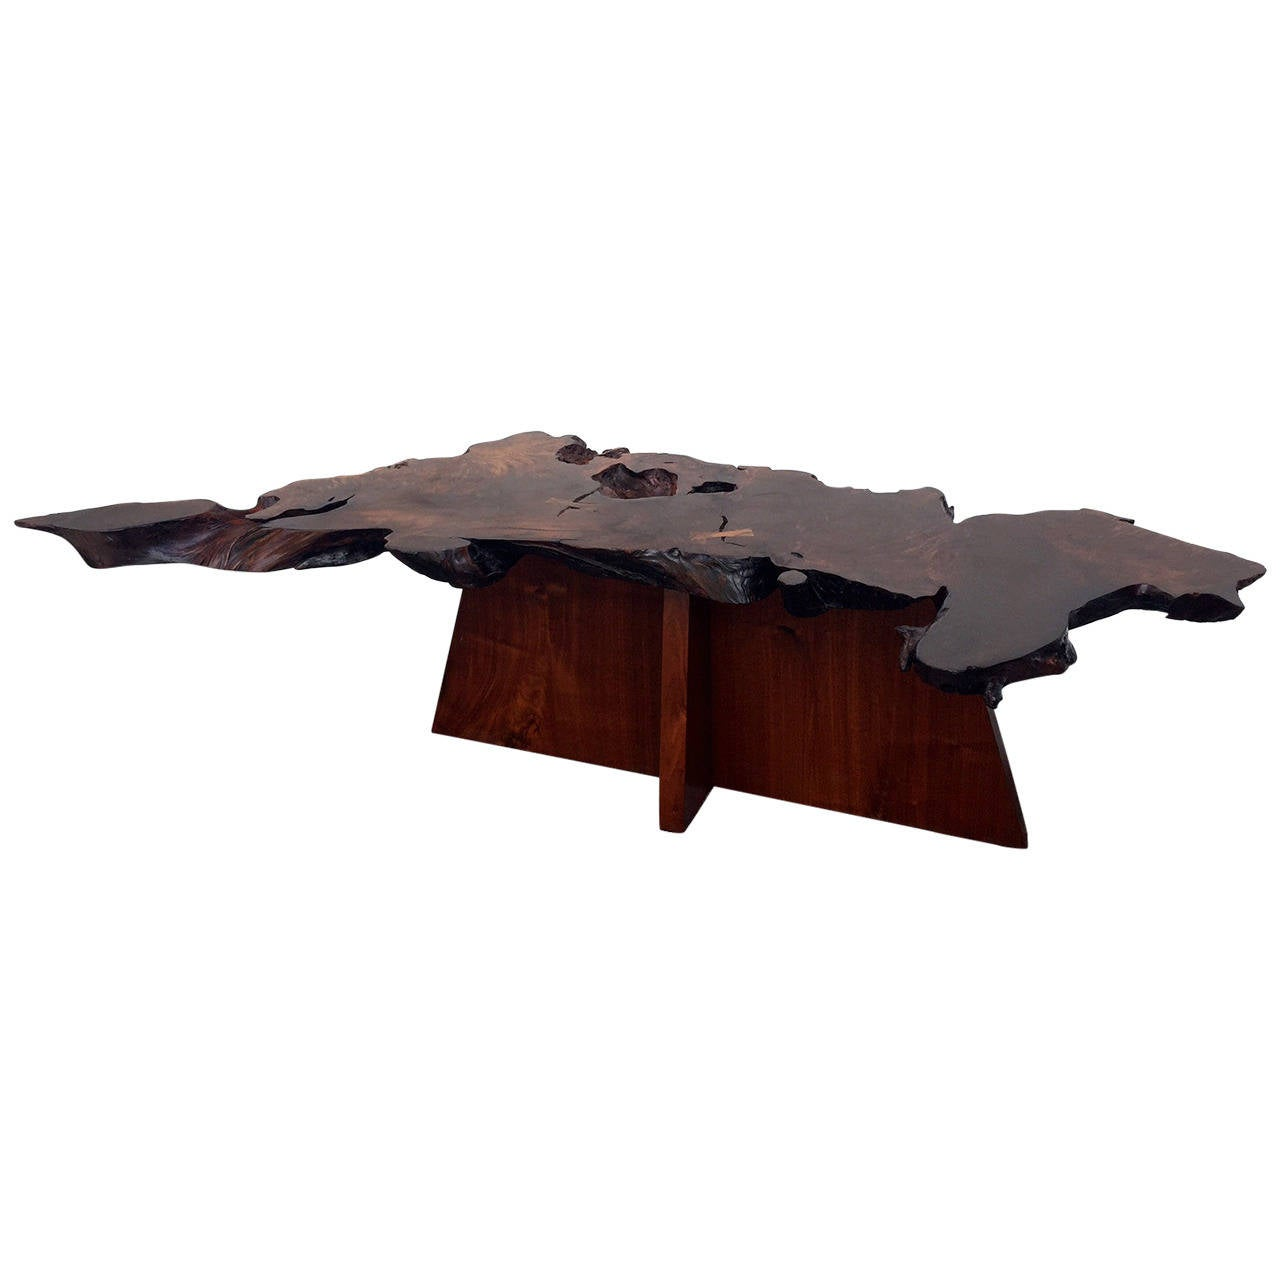 Rare and Exceptional Walnut and Redwood Root Coffee Table by Mira